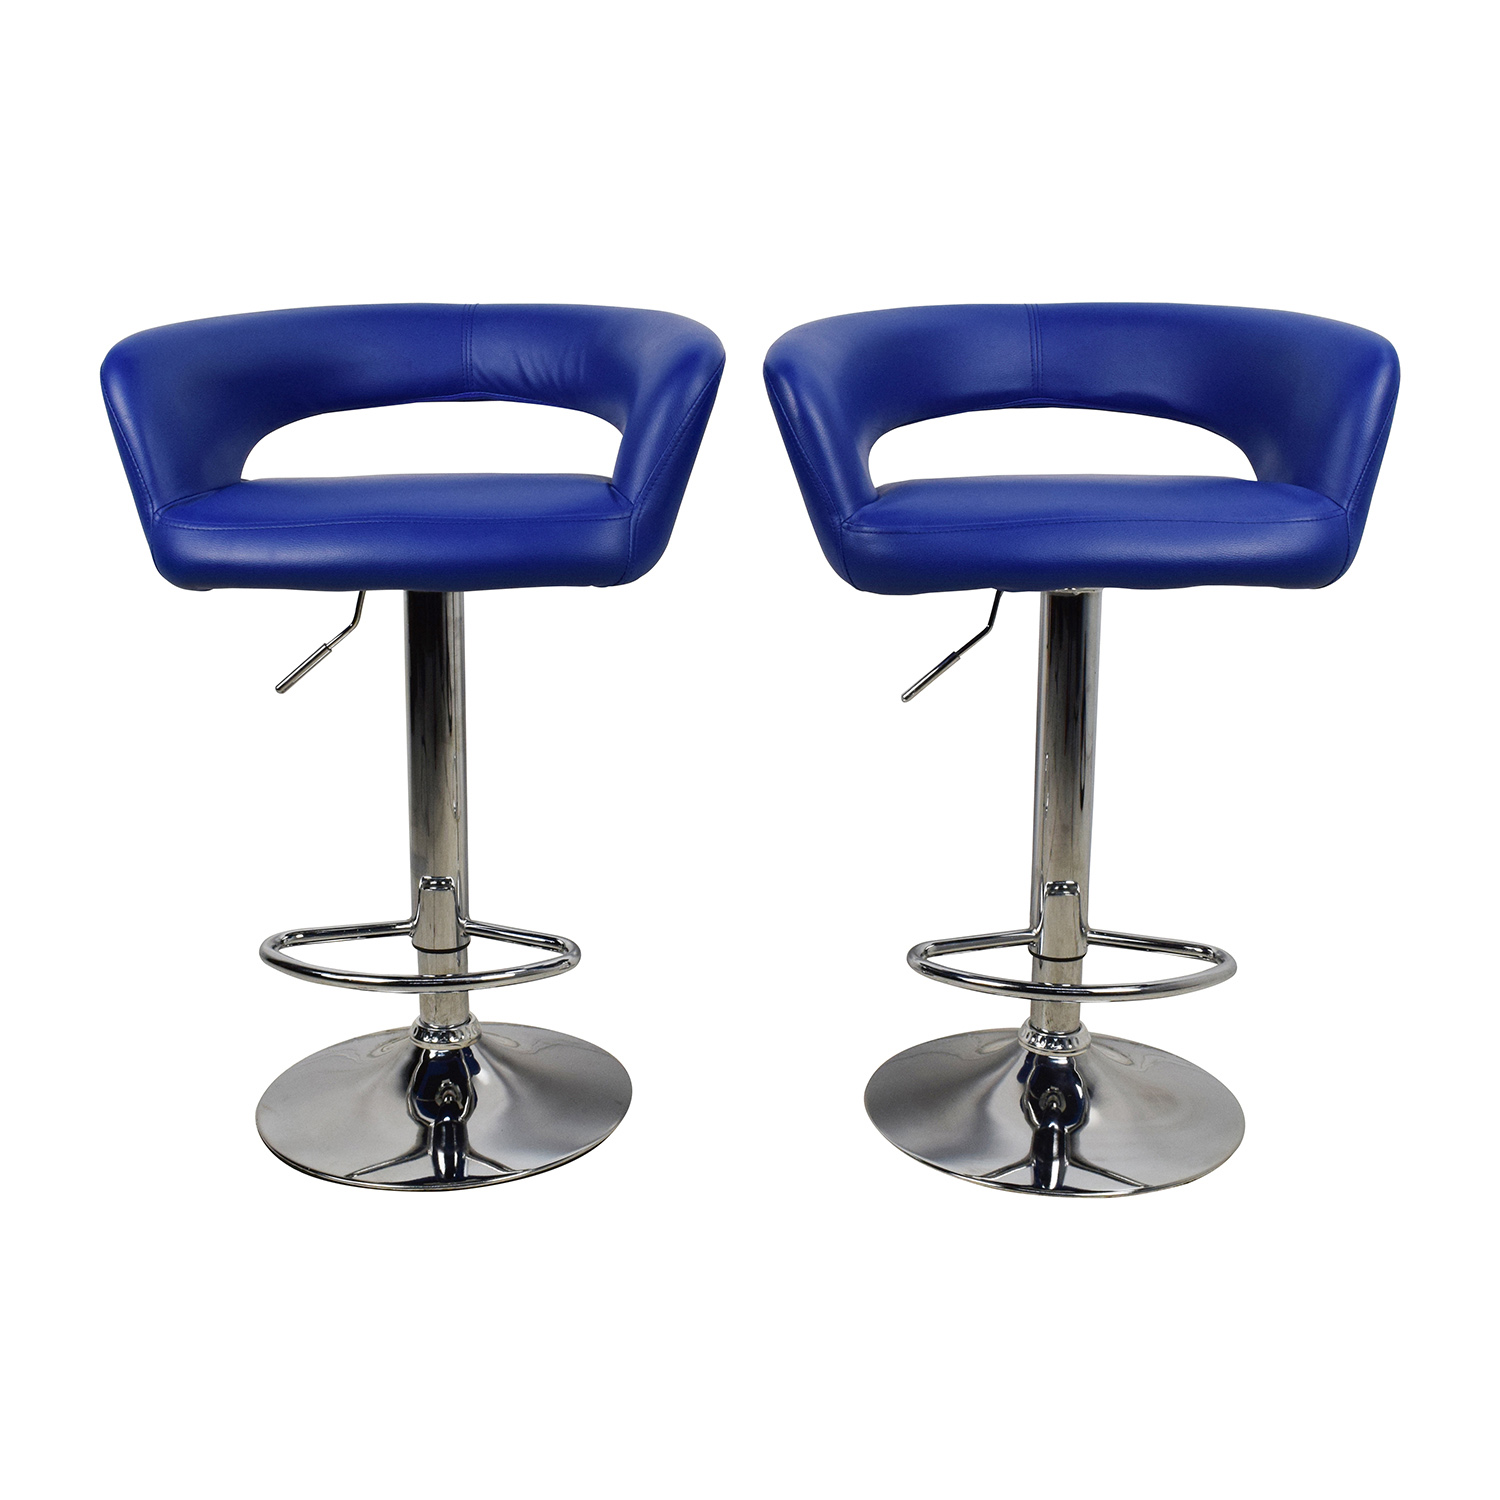 All Modern Blue Leather Adjustable Height Swivel Bar Stools All Modern